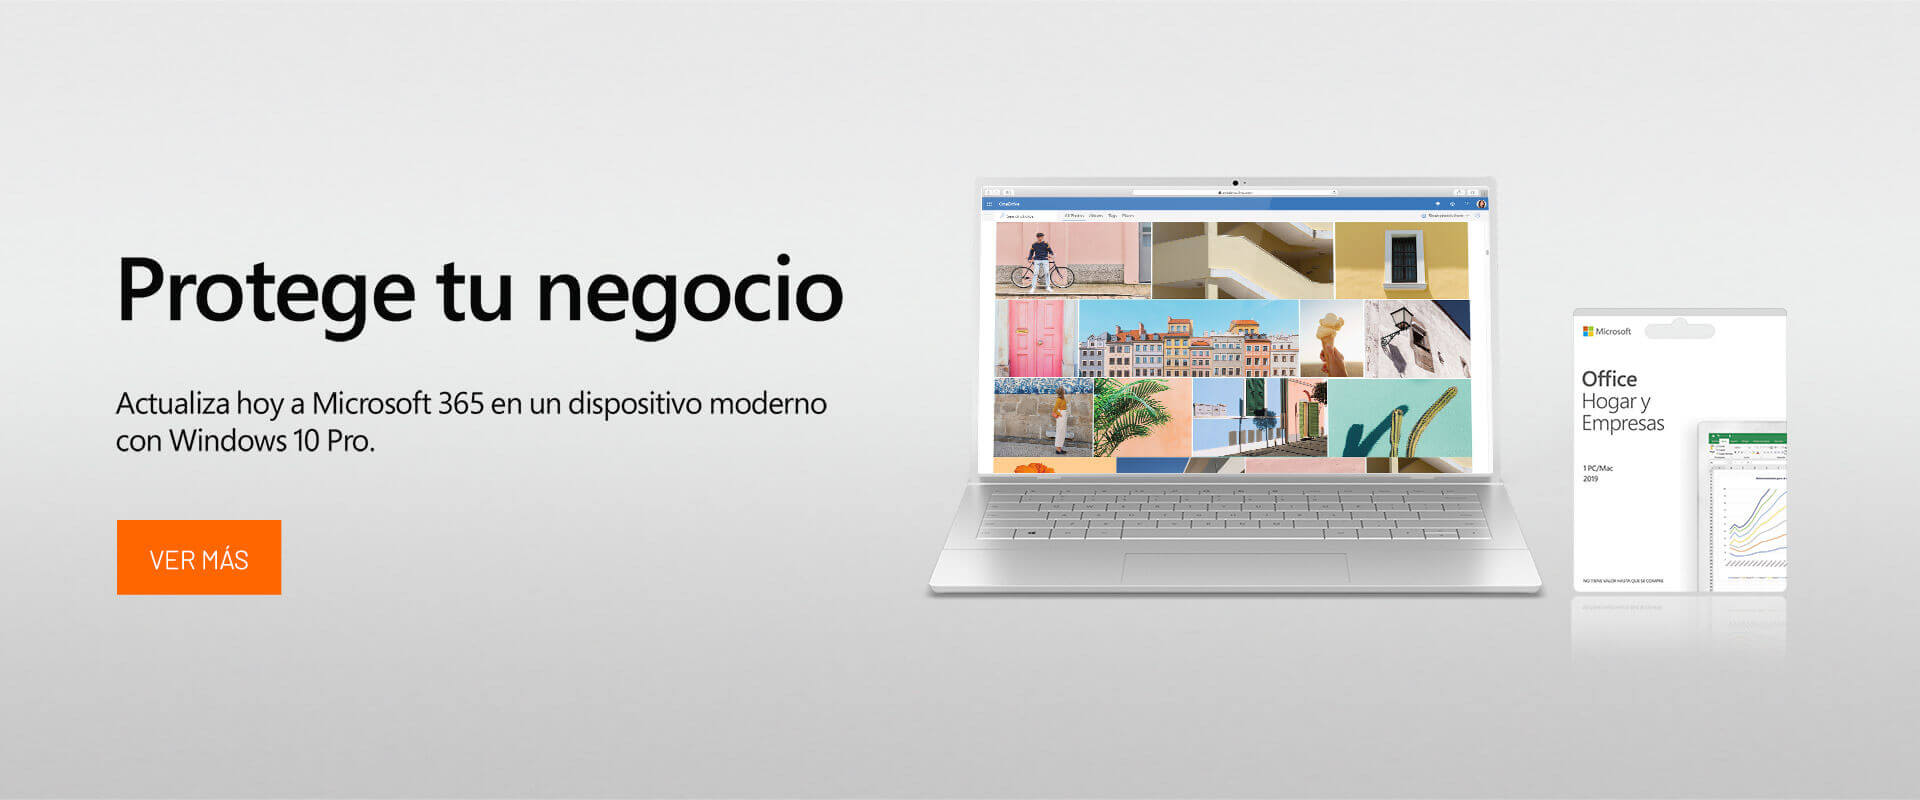 Aprovecha Microsoft 365 con dispositivos windows 10